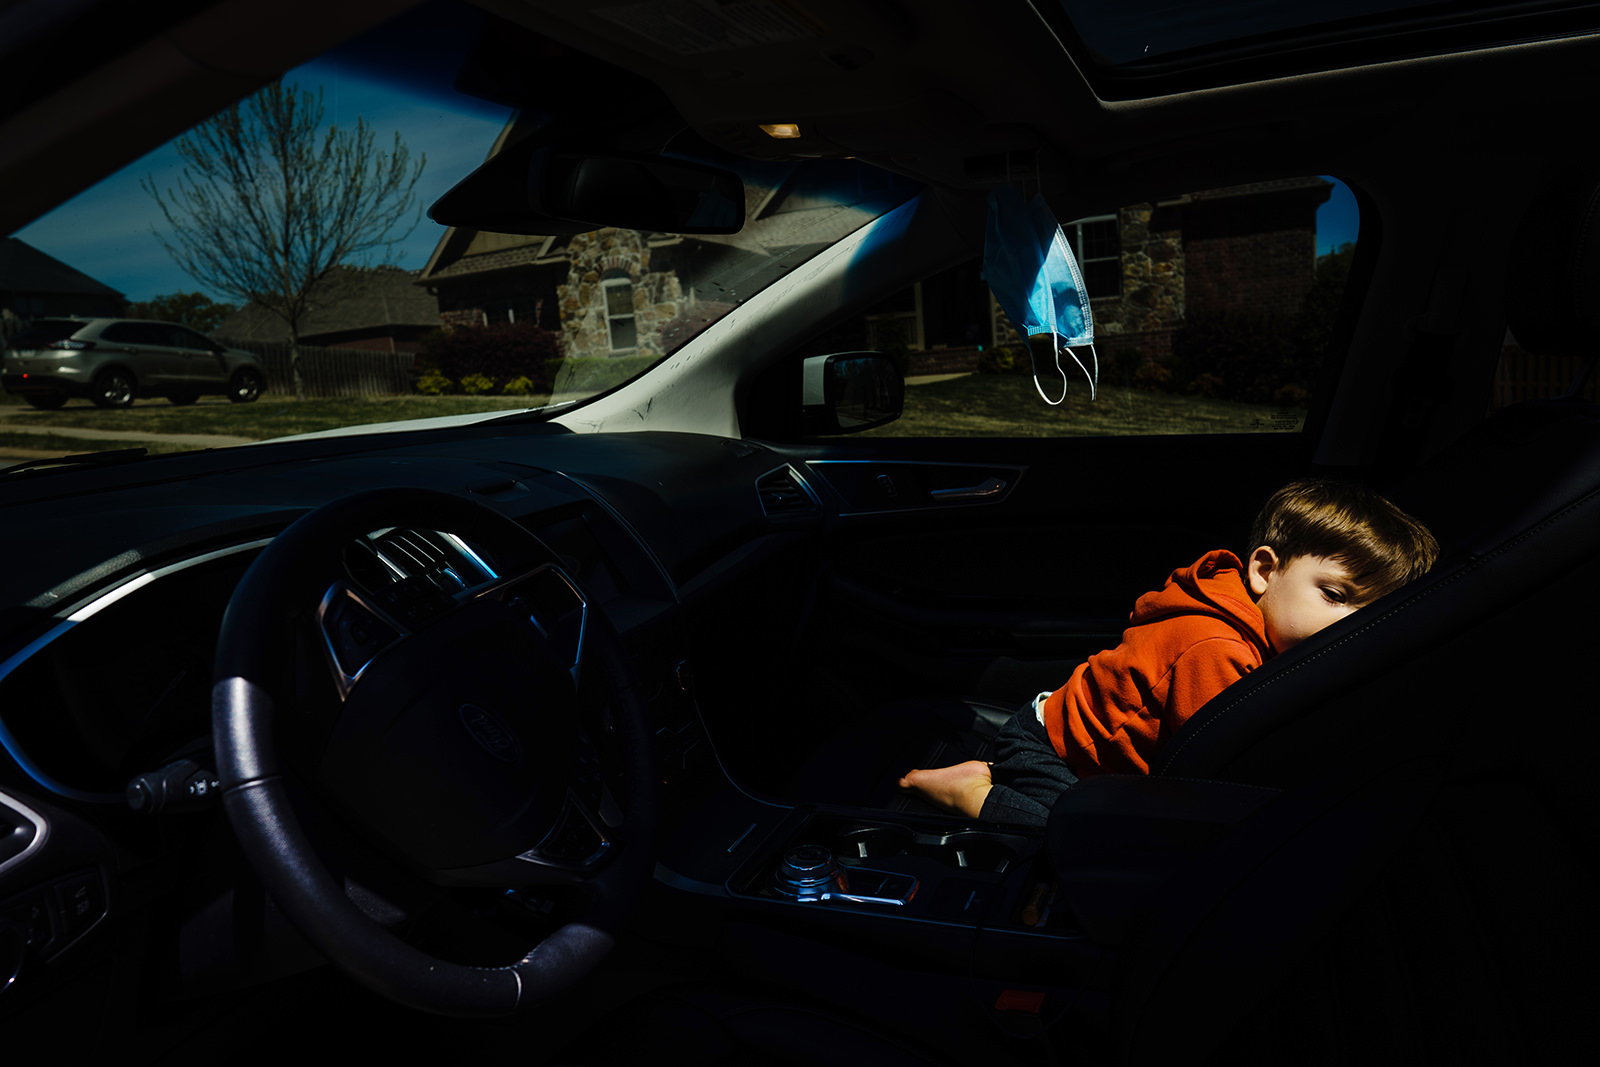 Documentary photo of a boy sleeping with parent in a dark car